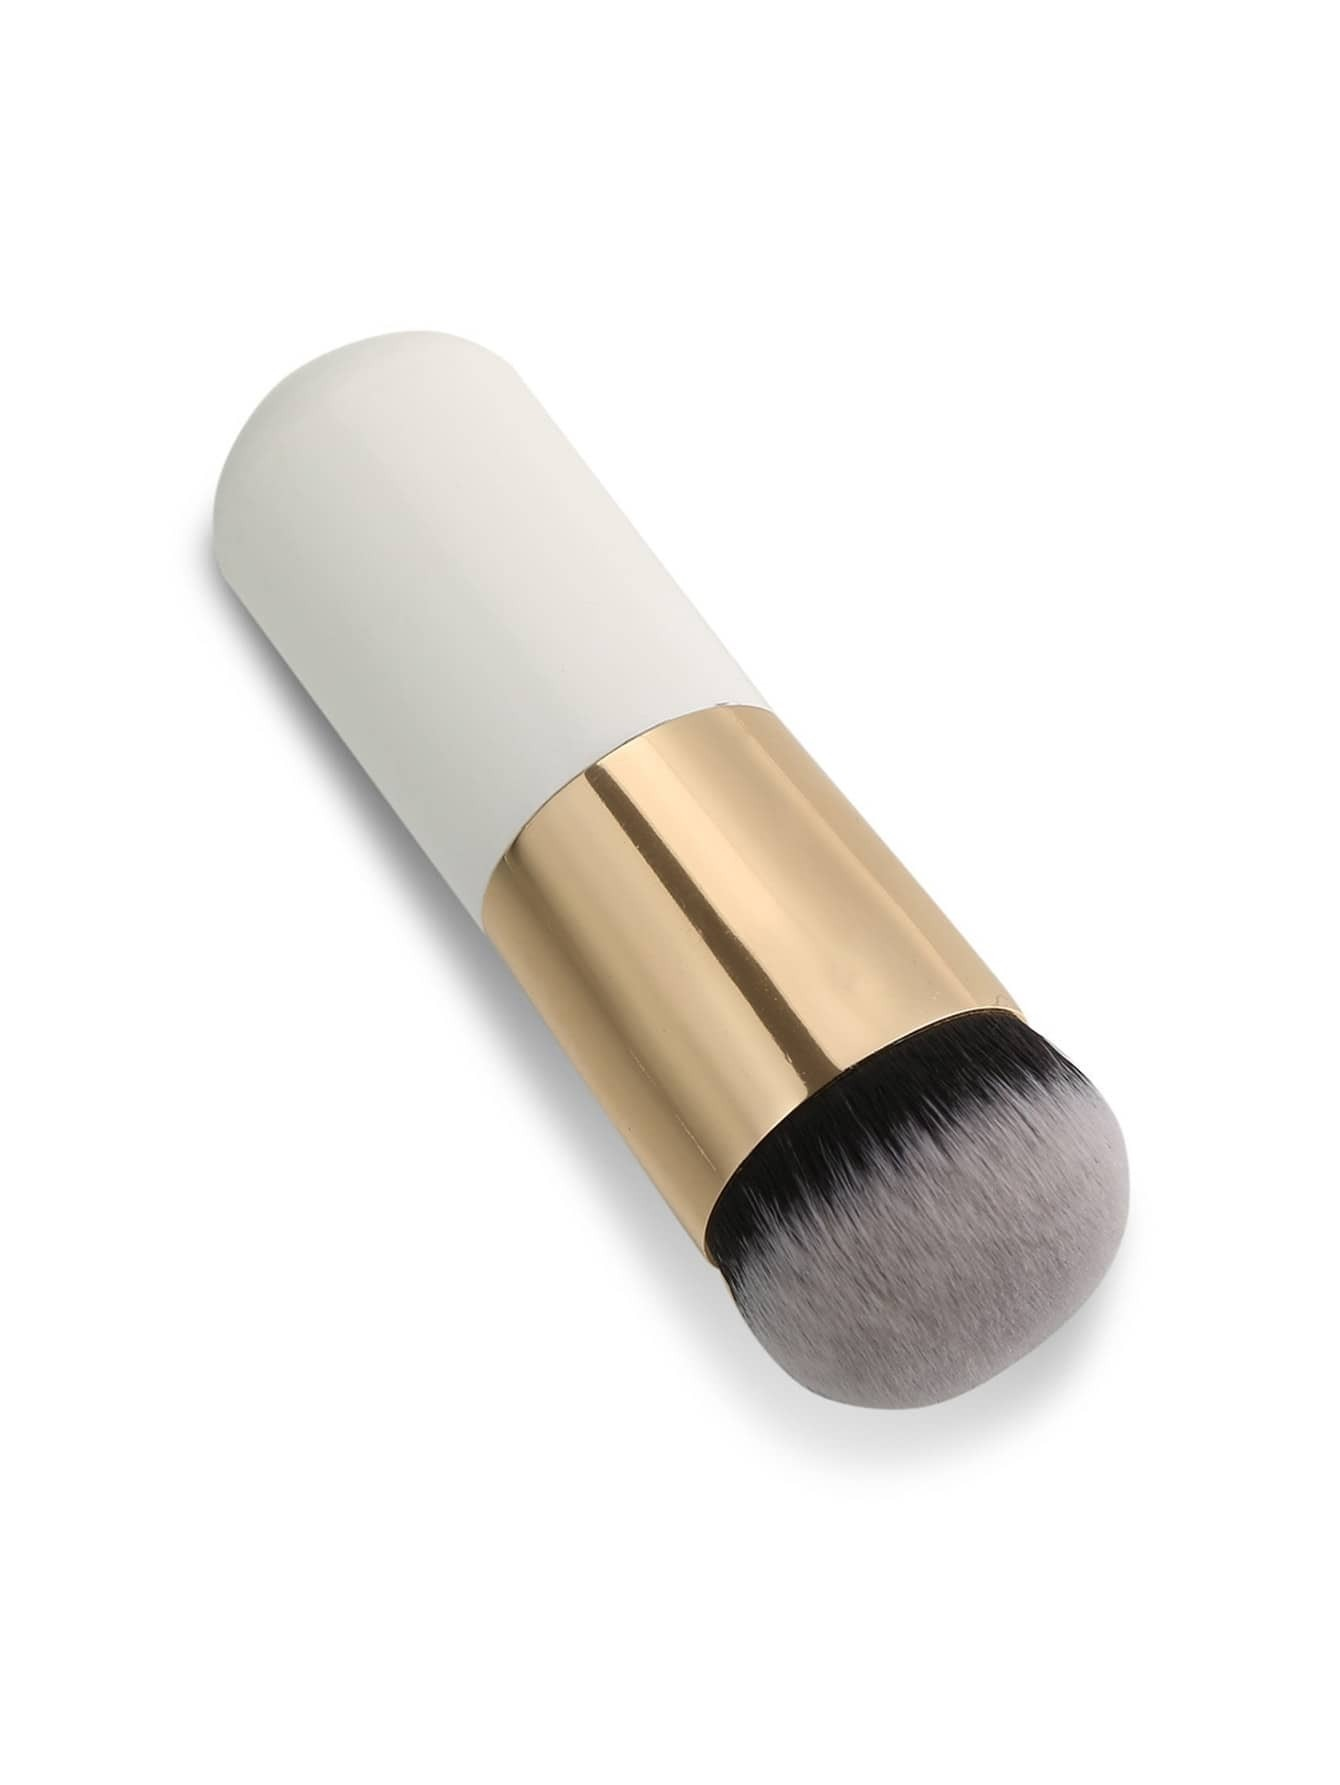 все цены на Chunky Makeup Brush 1pcs онлайн